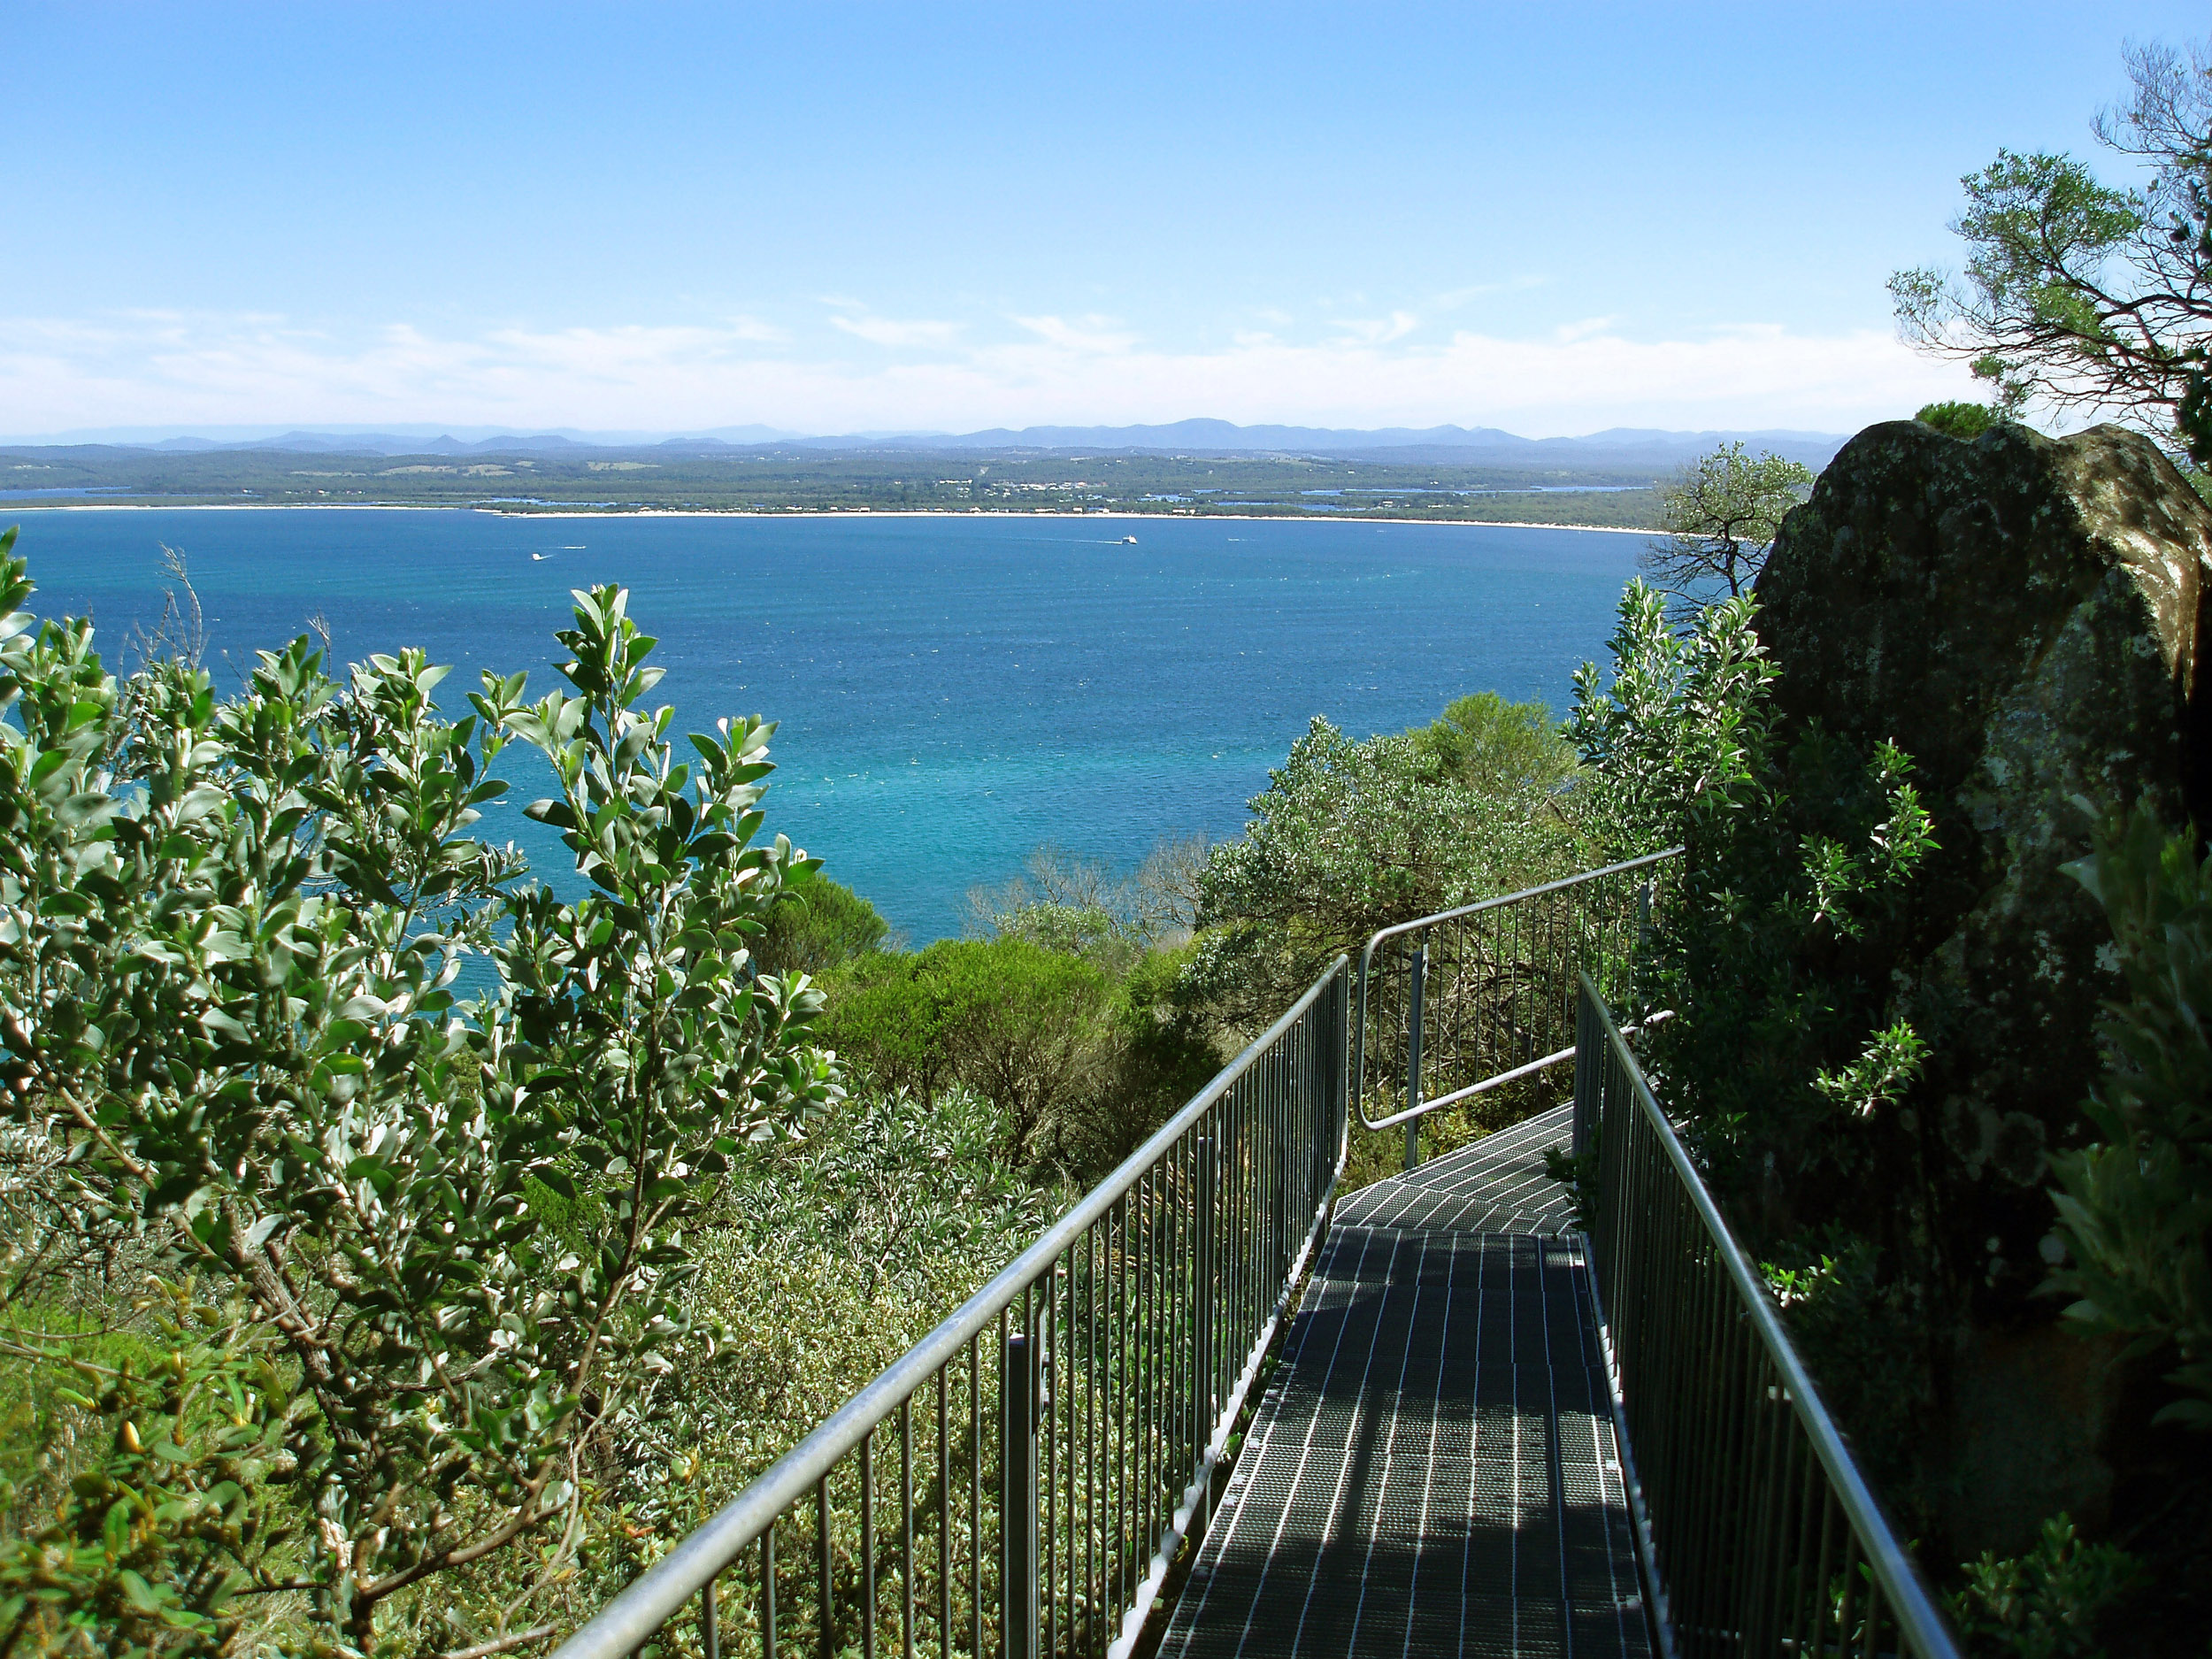 metal walkways along the climb up tomaree head, shoal bay, port stephens